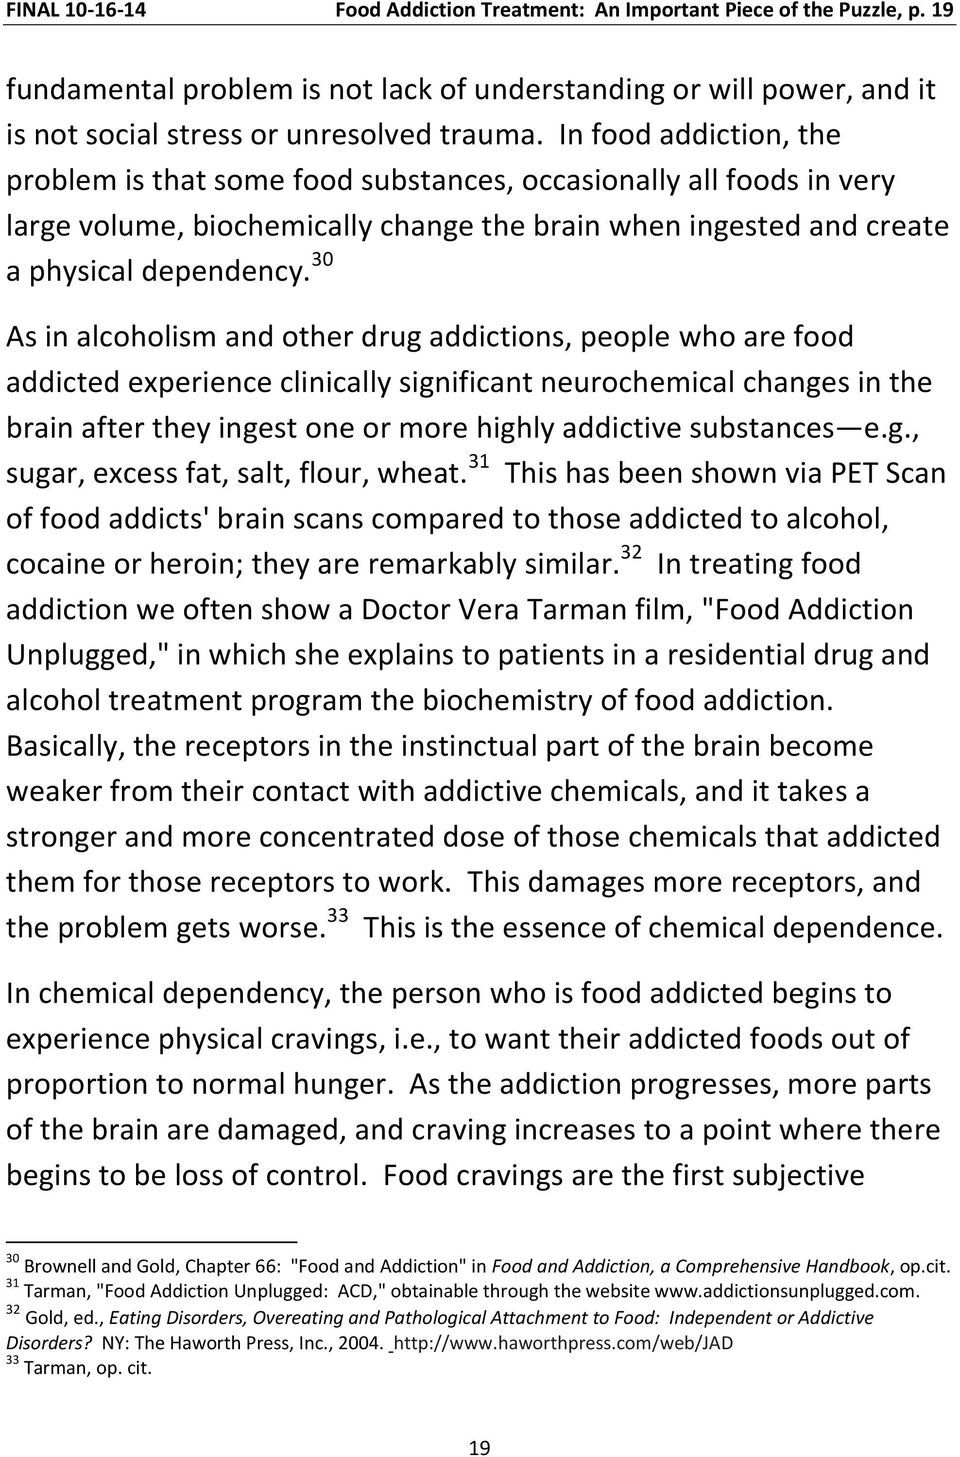 30 As in alcoholism and other drug addictions, people who are food addicted experience clinically significant neurochemical changes in the brain after they ingest one or more highly addictive